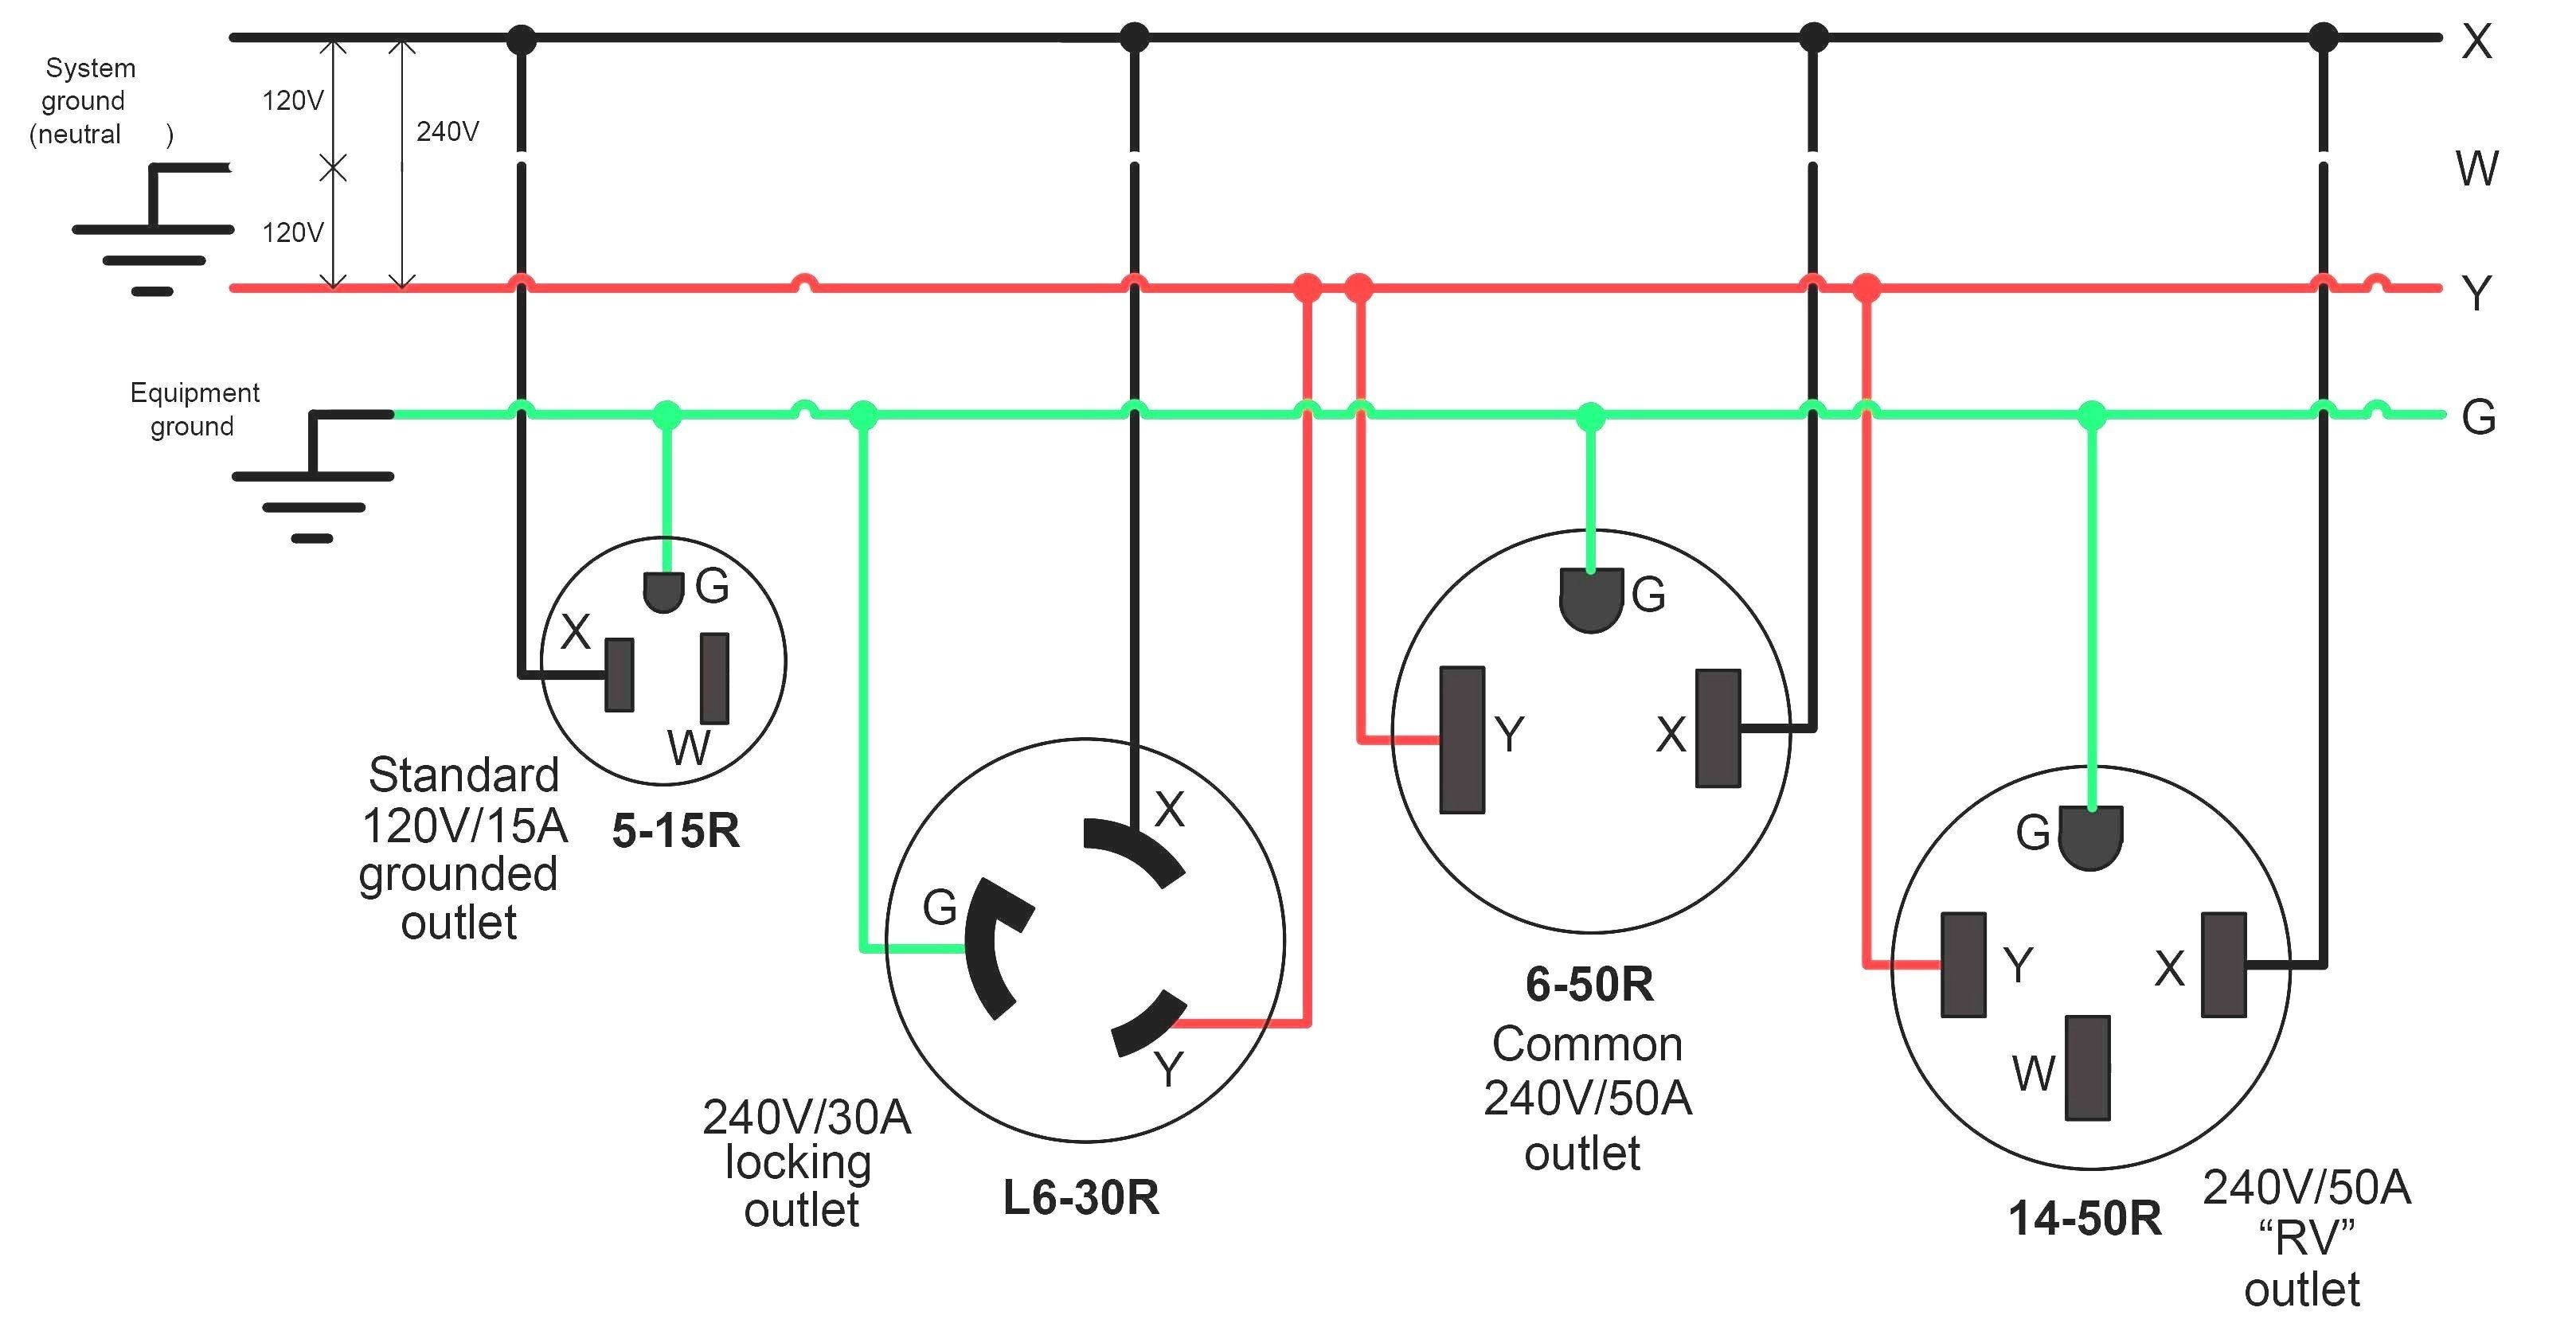 Wiring A 220 Volt Plug - Wiring Diagram Kni on wiring a dryer outlet, wiring a light switch and gfci outlet, wiring double outlet box, wiring a 110 outlet, dual wiring a receptacle outlet, wiring 240 vac outlet,